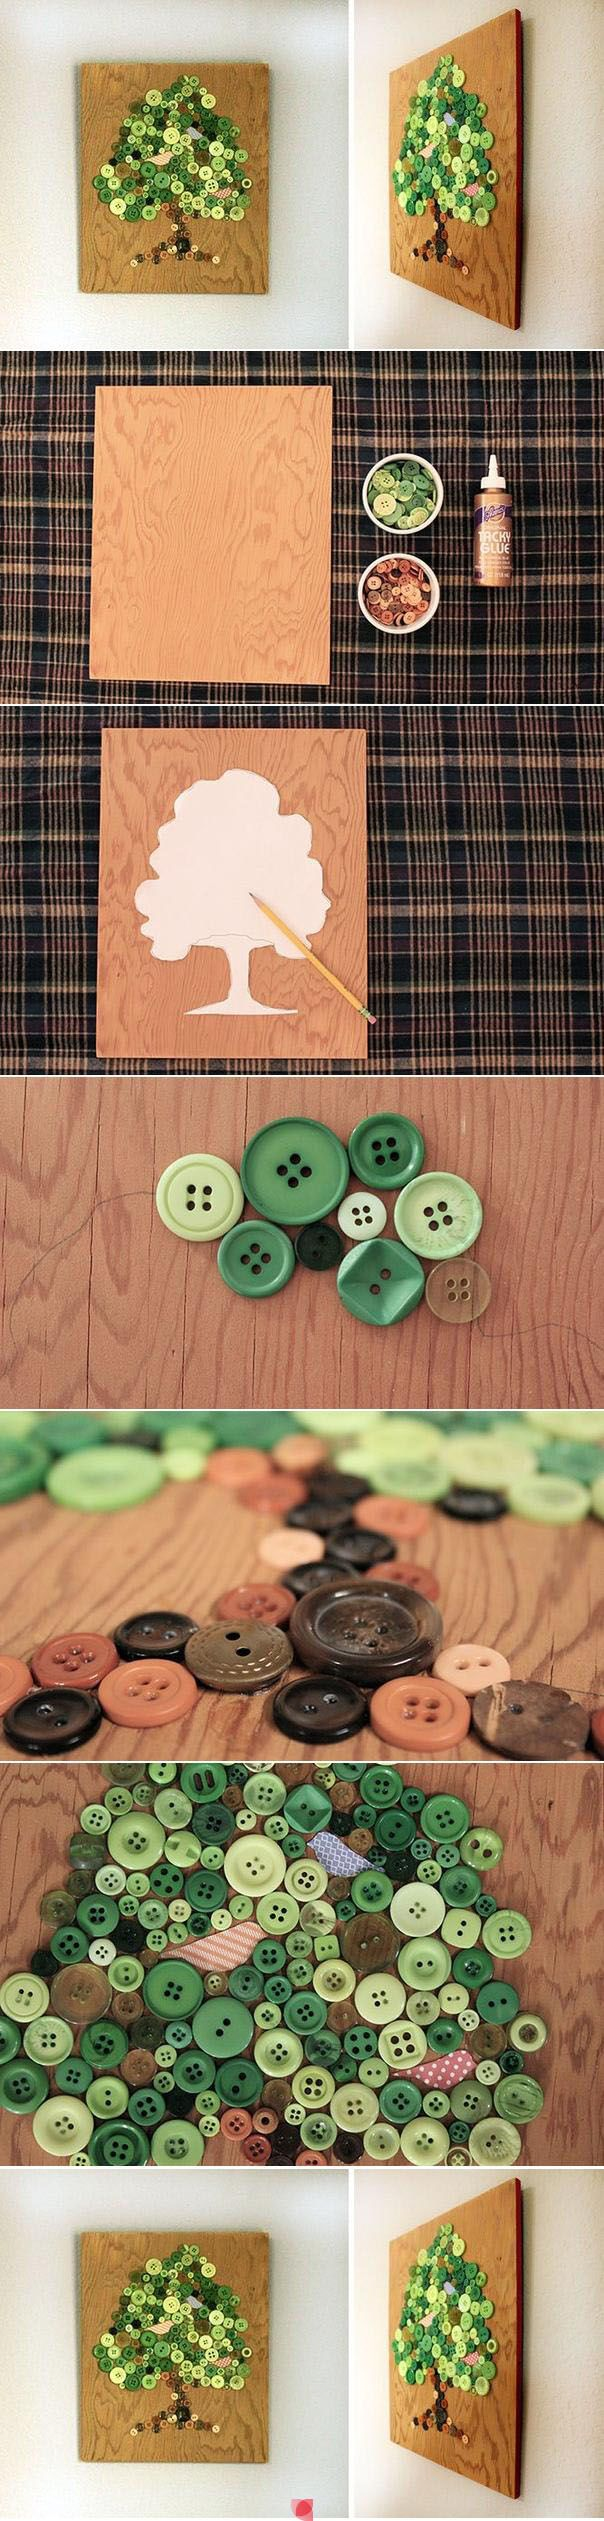 Now I know what to do with my button collection. May even use this idea on a pillow or bag.